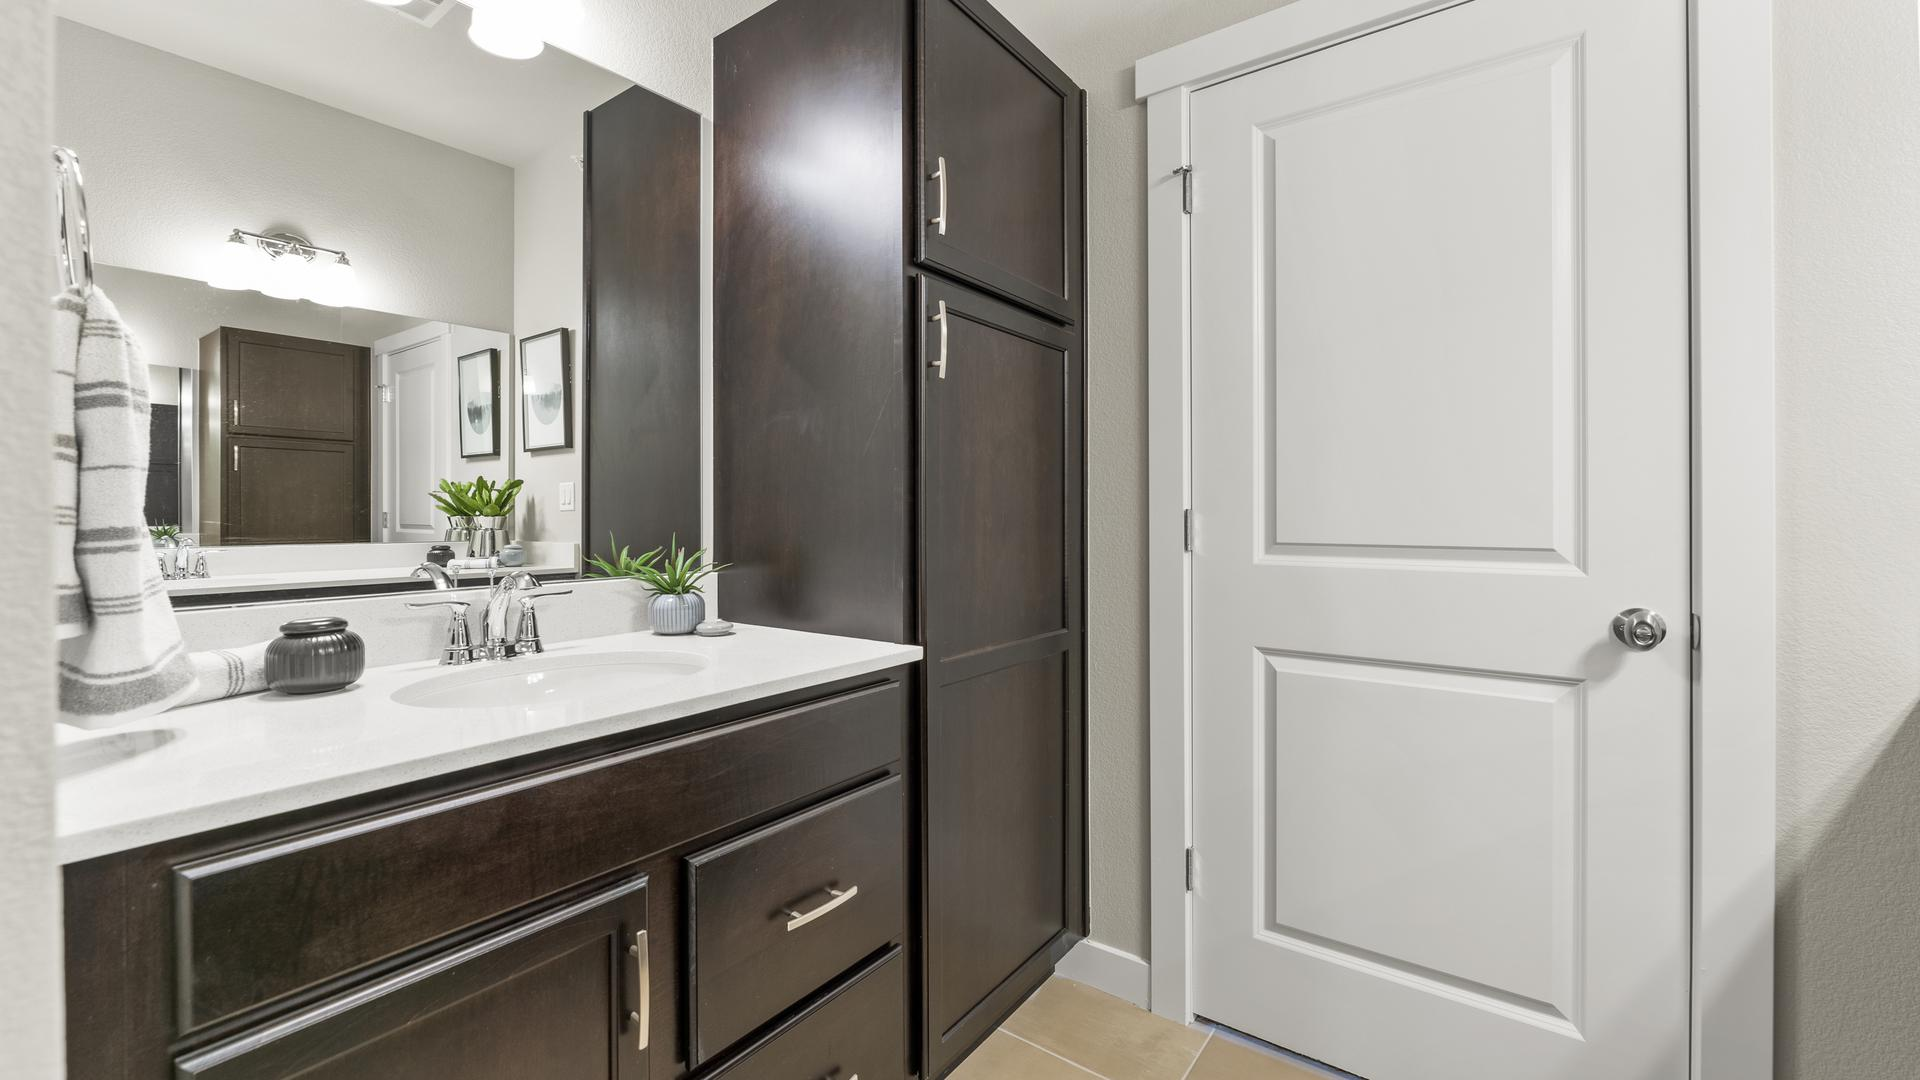 Master Bath - Not Actual Home - Finishes Will Vary